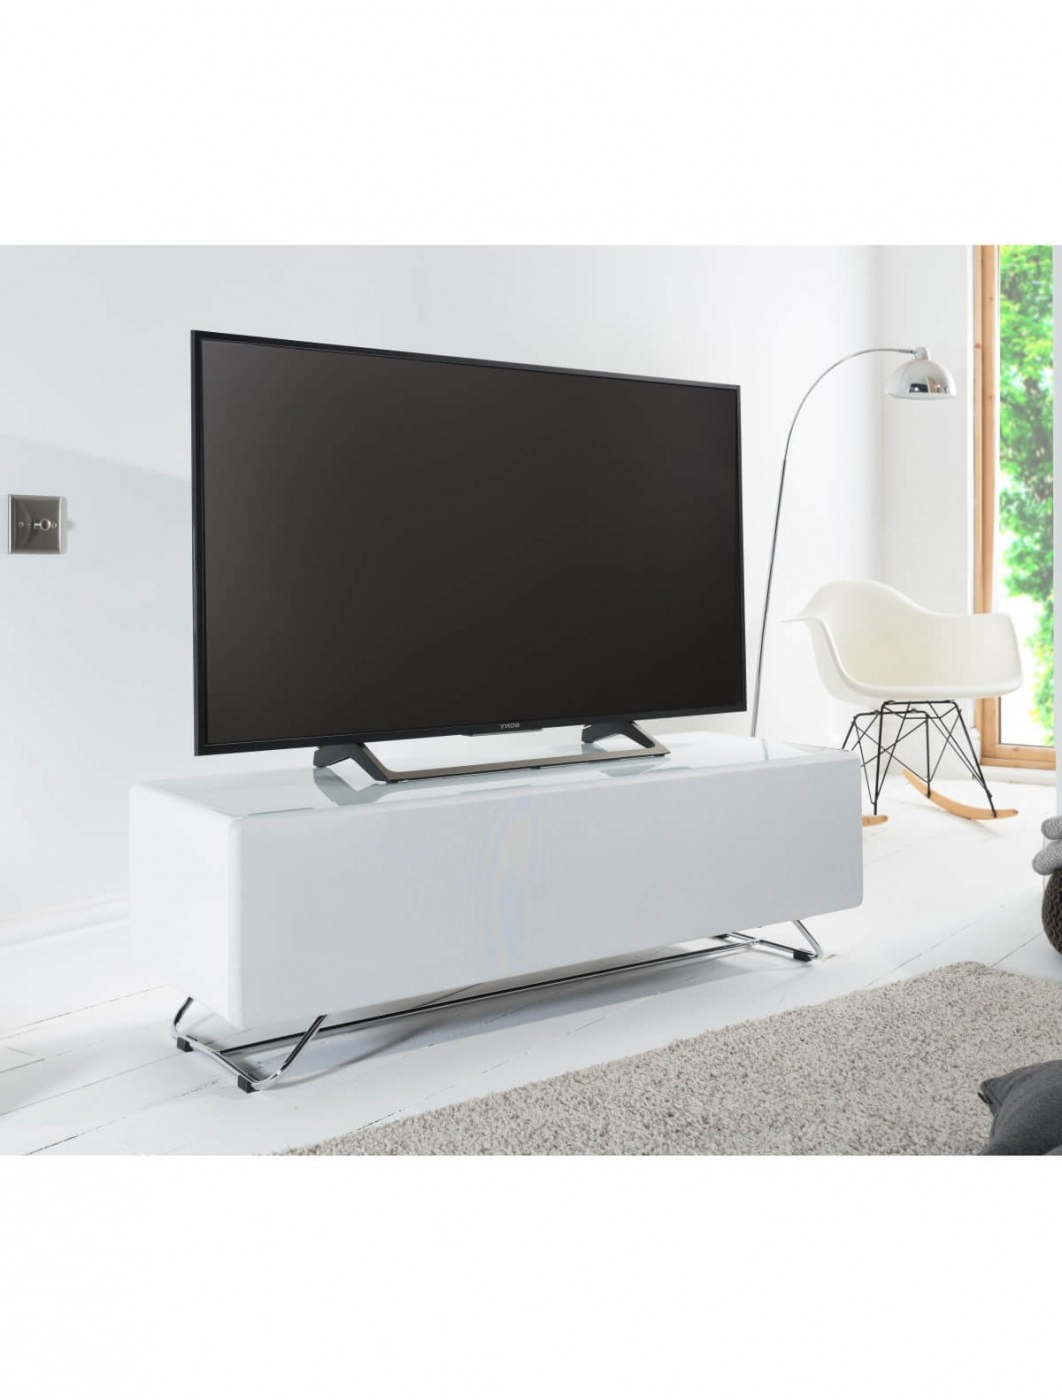 Tv Stand White Chromium Concept 1200mm Cro2 1200cpt Wh Pertaining To Chromium Tv Stands (View 12 of 20)